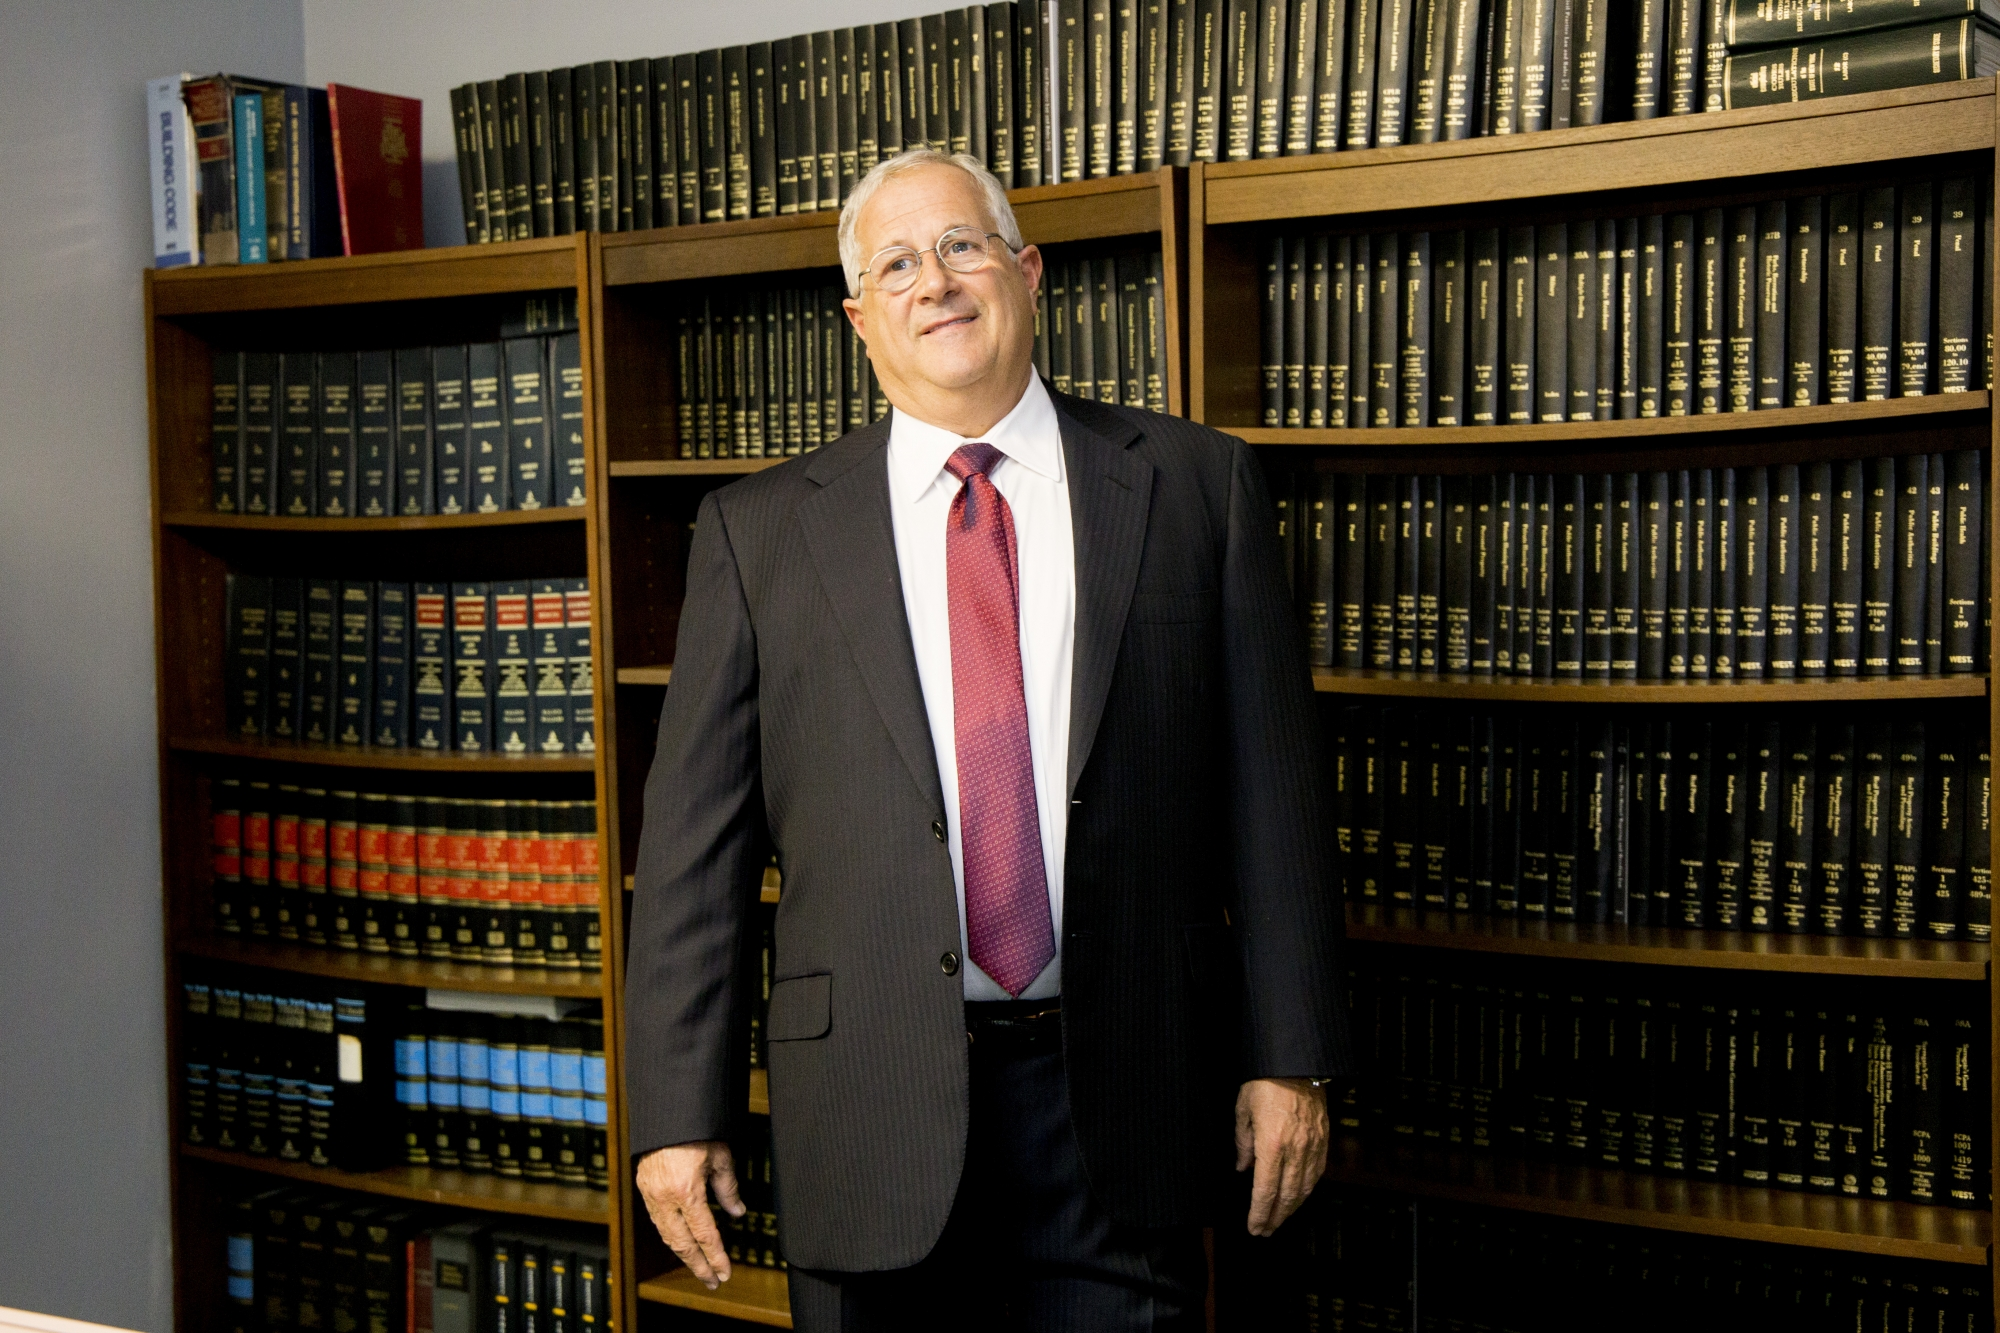 Injury & Accident Attorney Reid B. Wissner in His Office at 325 Broadway